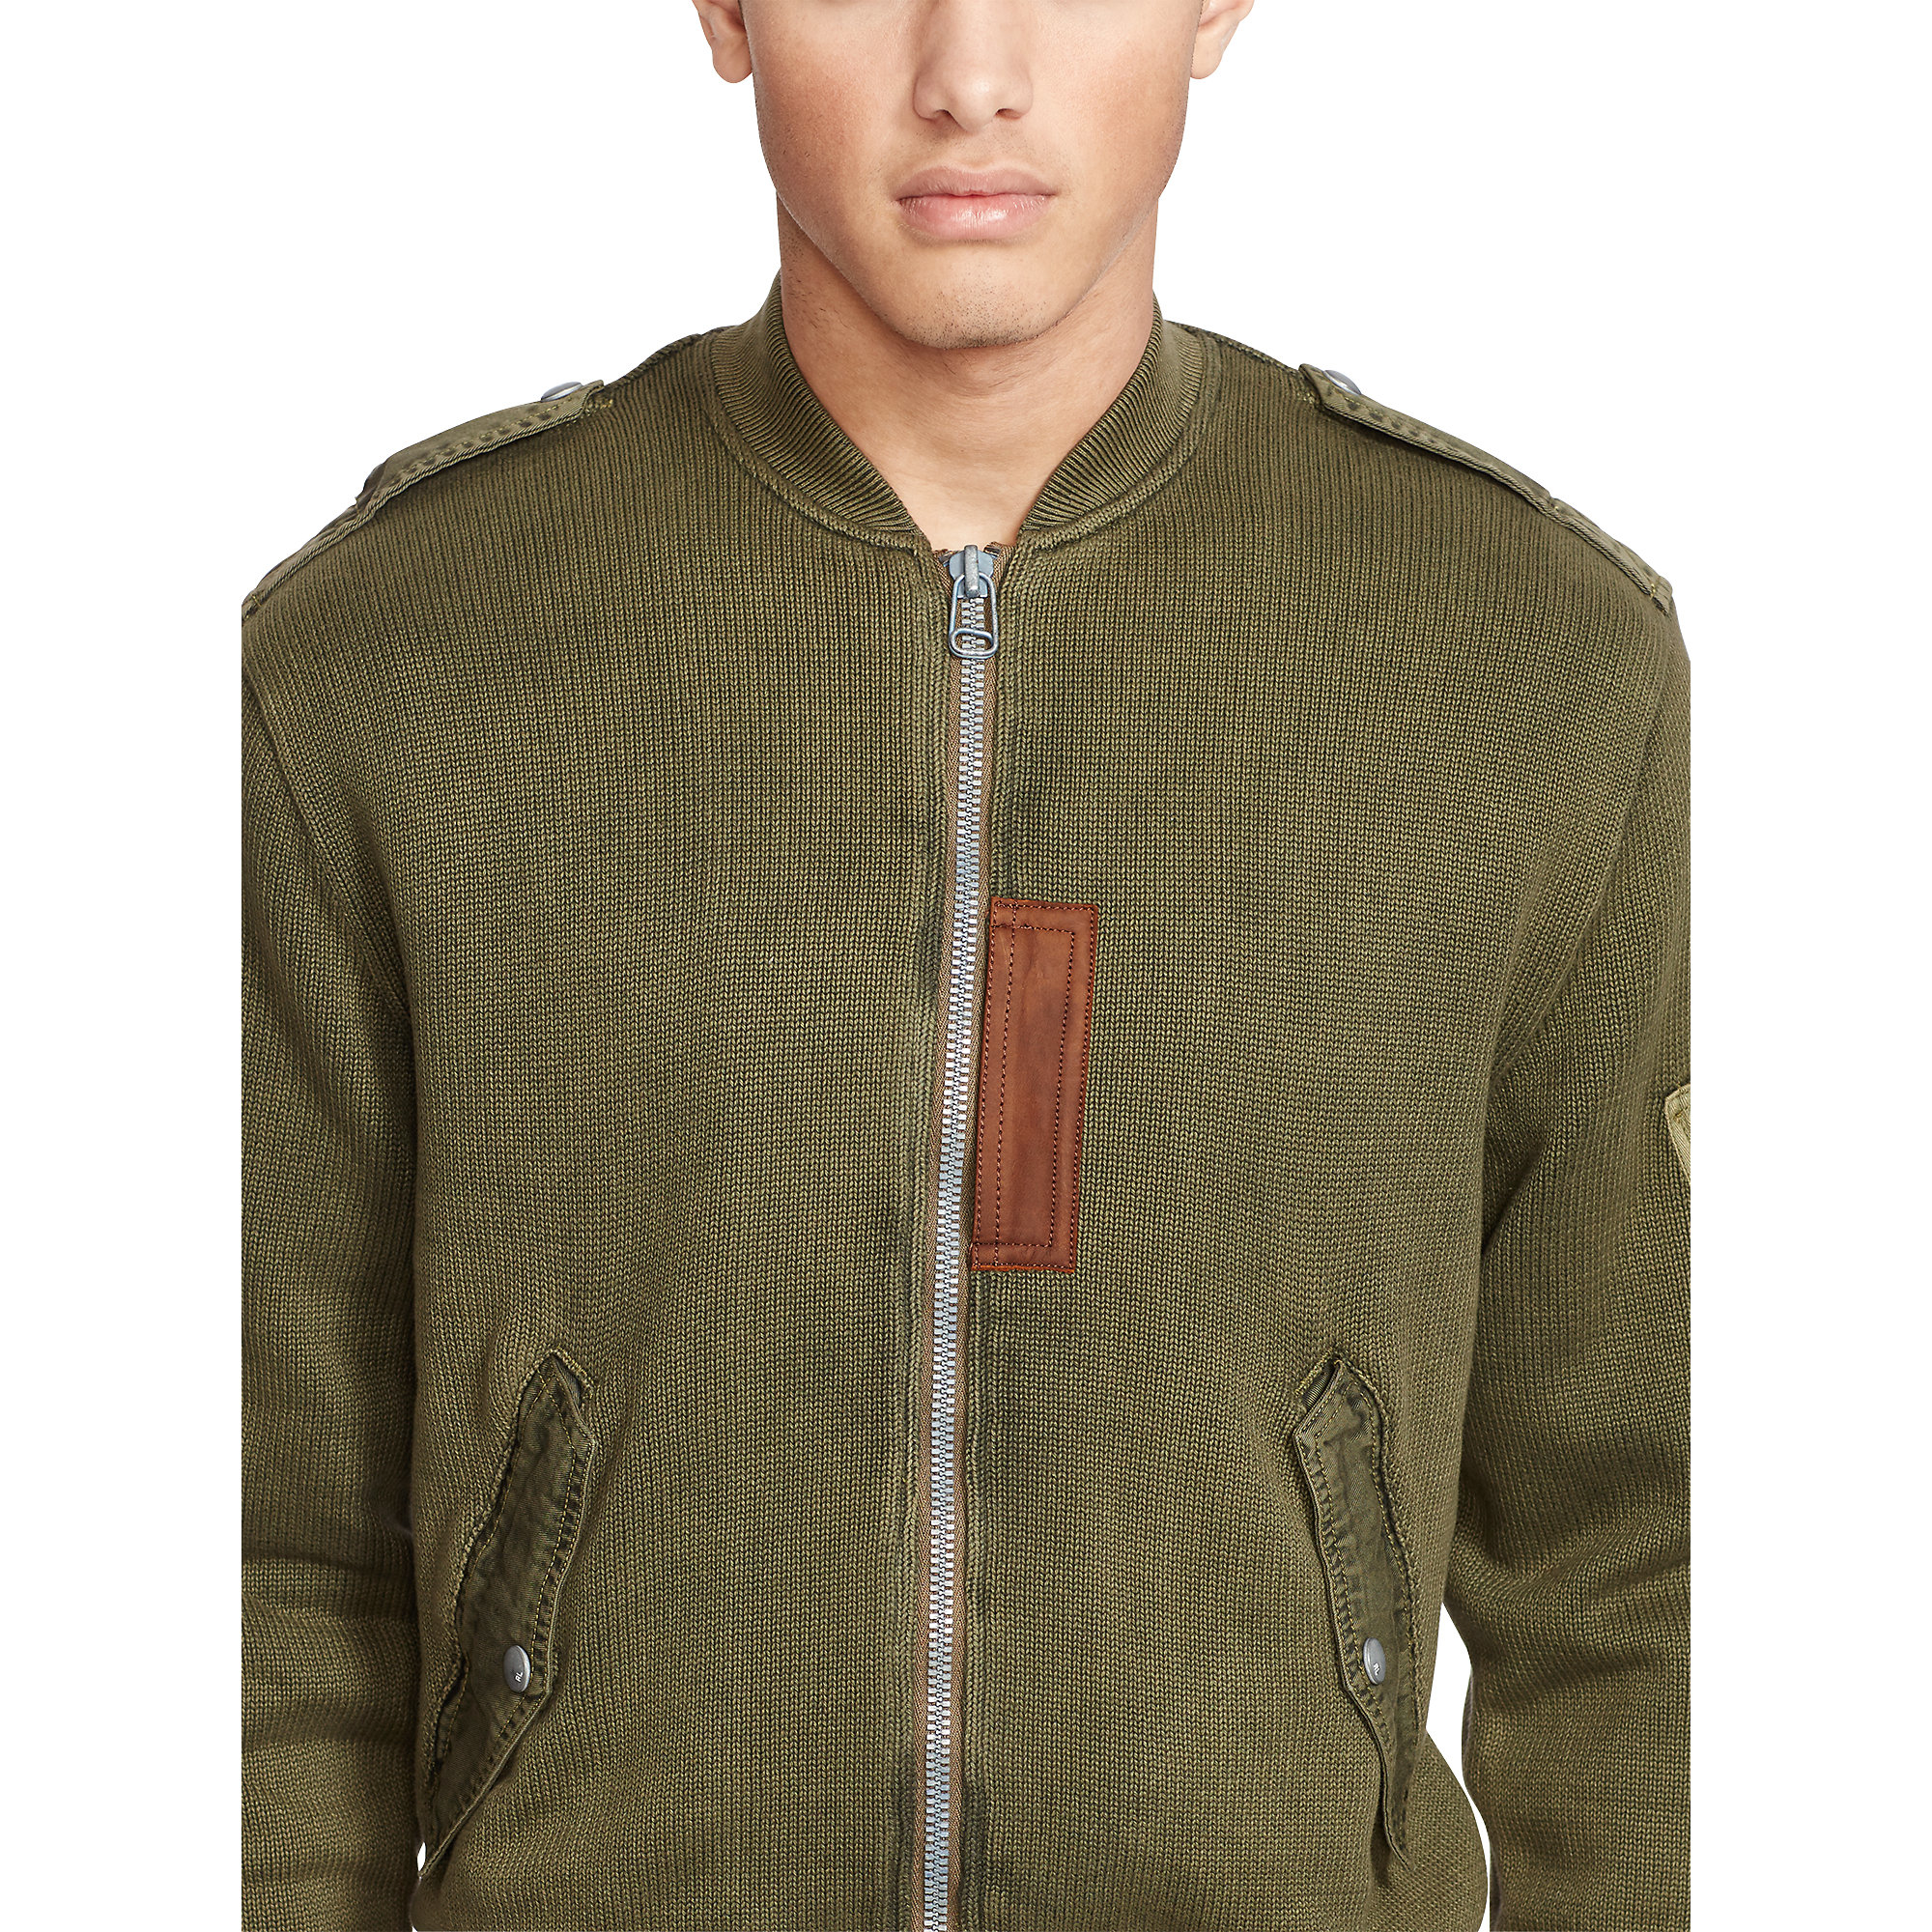 Polo ralph lauren Cotton Sweater Jacket in Green for Men | Lyst